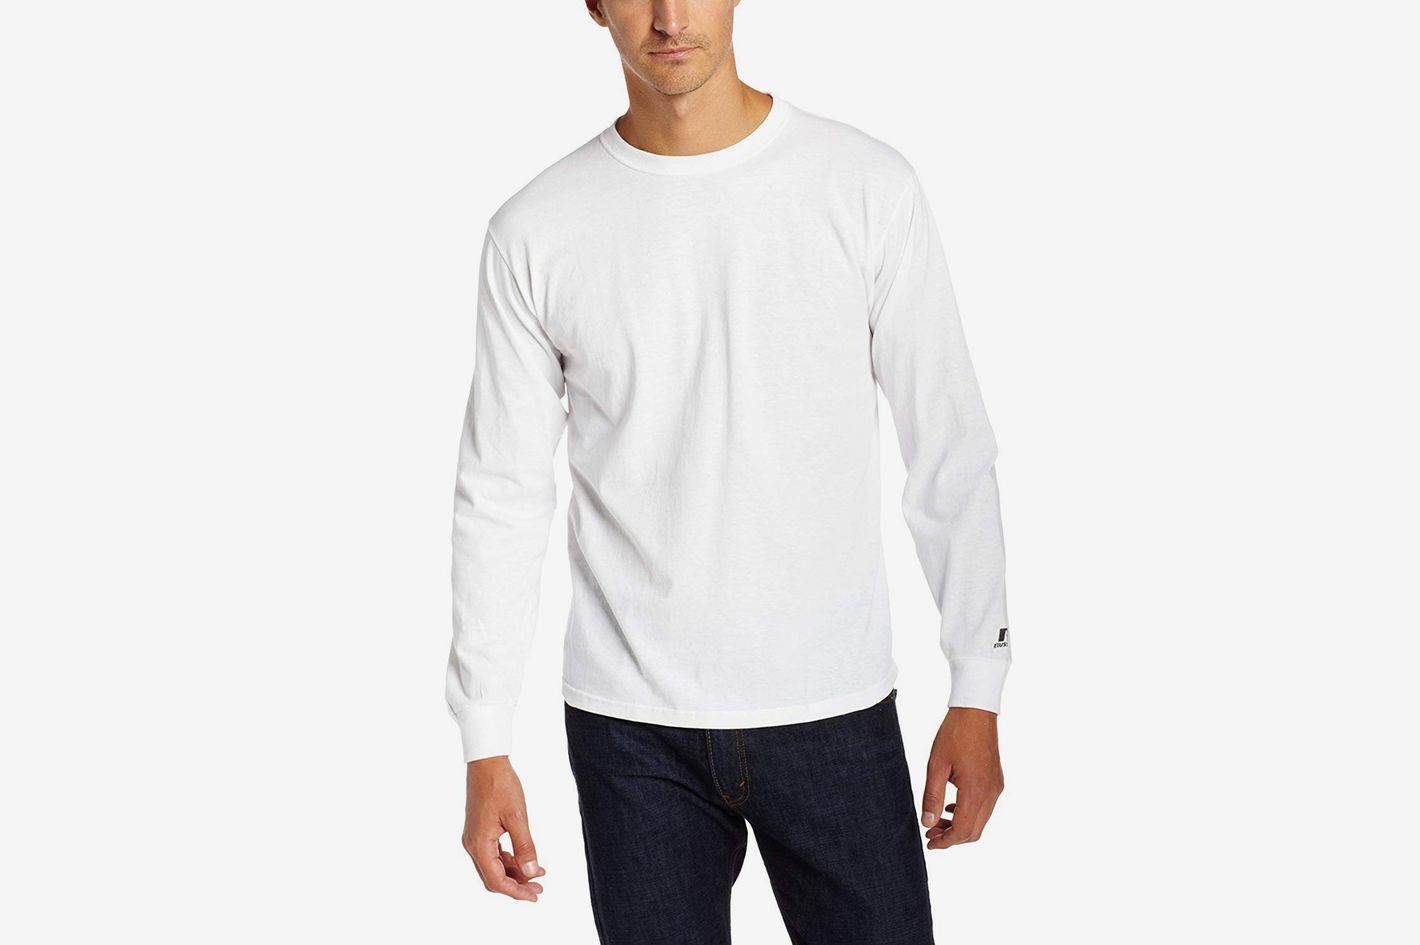 4286d0ada The Best Long-Sleeve T-Shirt for Men Under Six Feet. Russell Athletic Men s  Essential Long Sleeve Tee